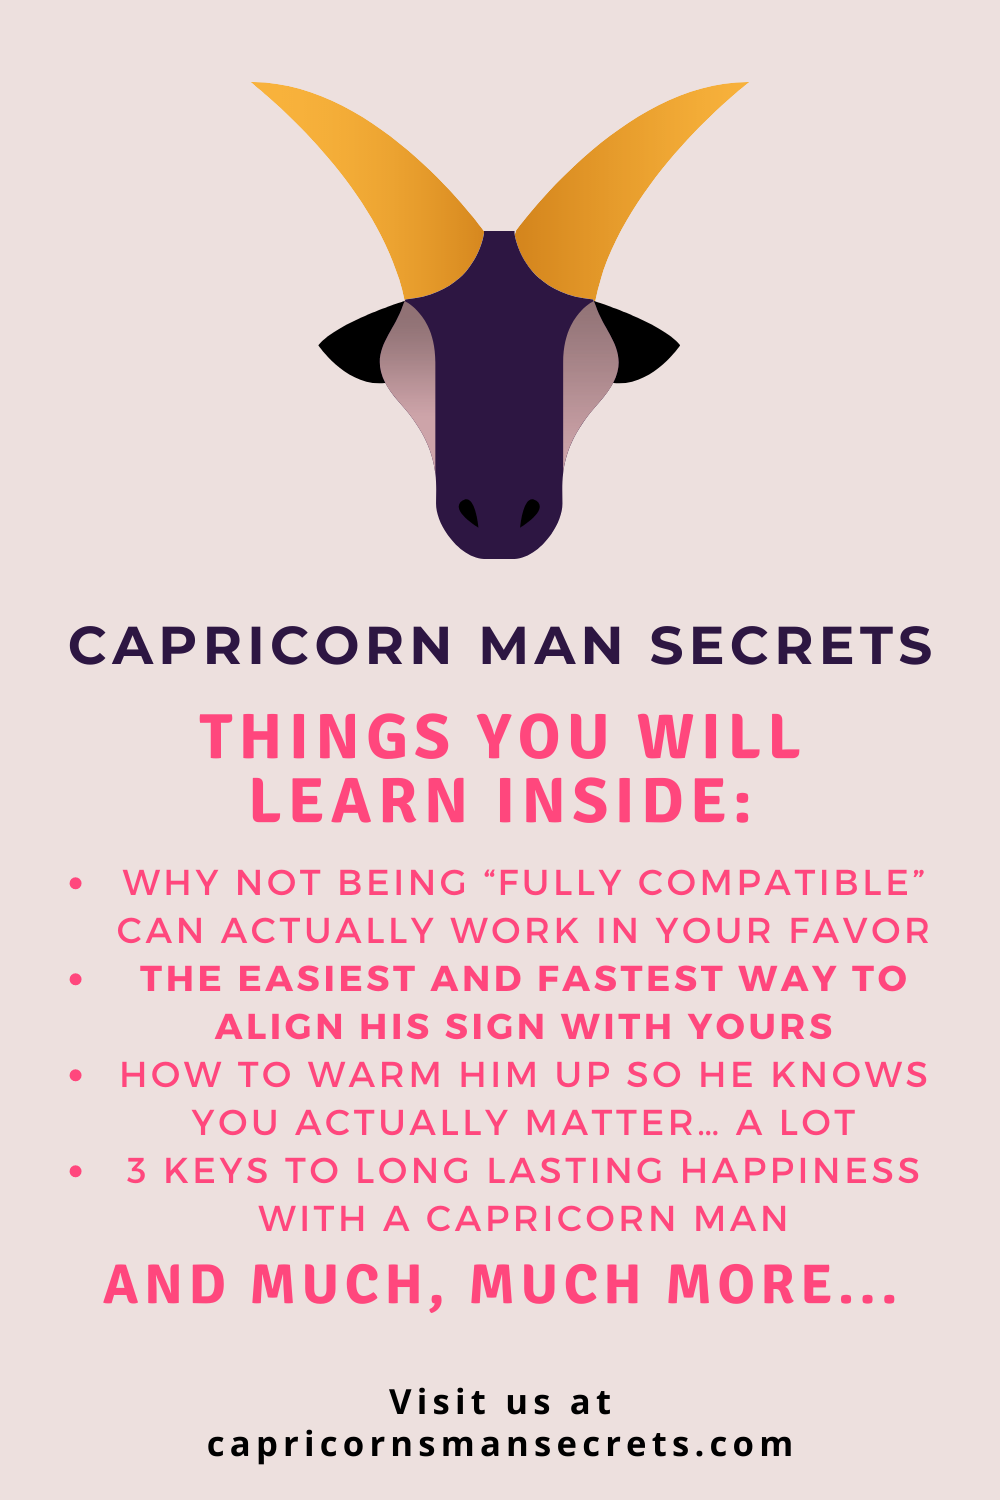 1bc6f0f83c31750dfeb665c97ec7cd0b - How To Get A Capricorn Man To Ask You Out